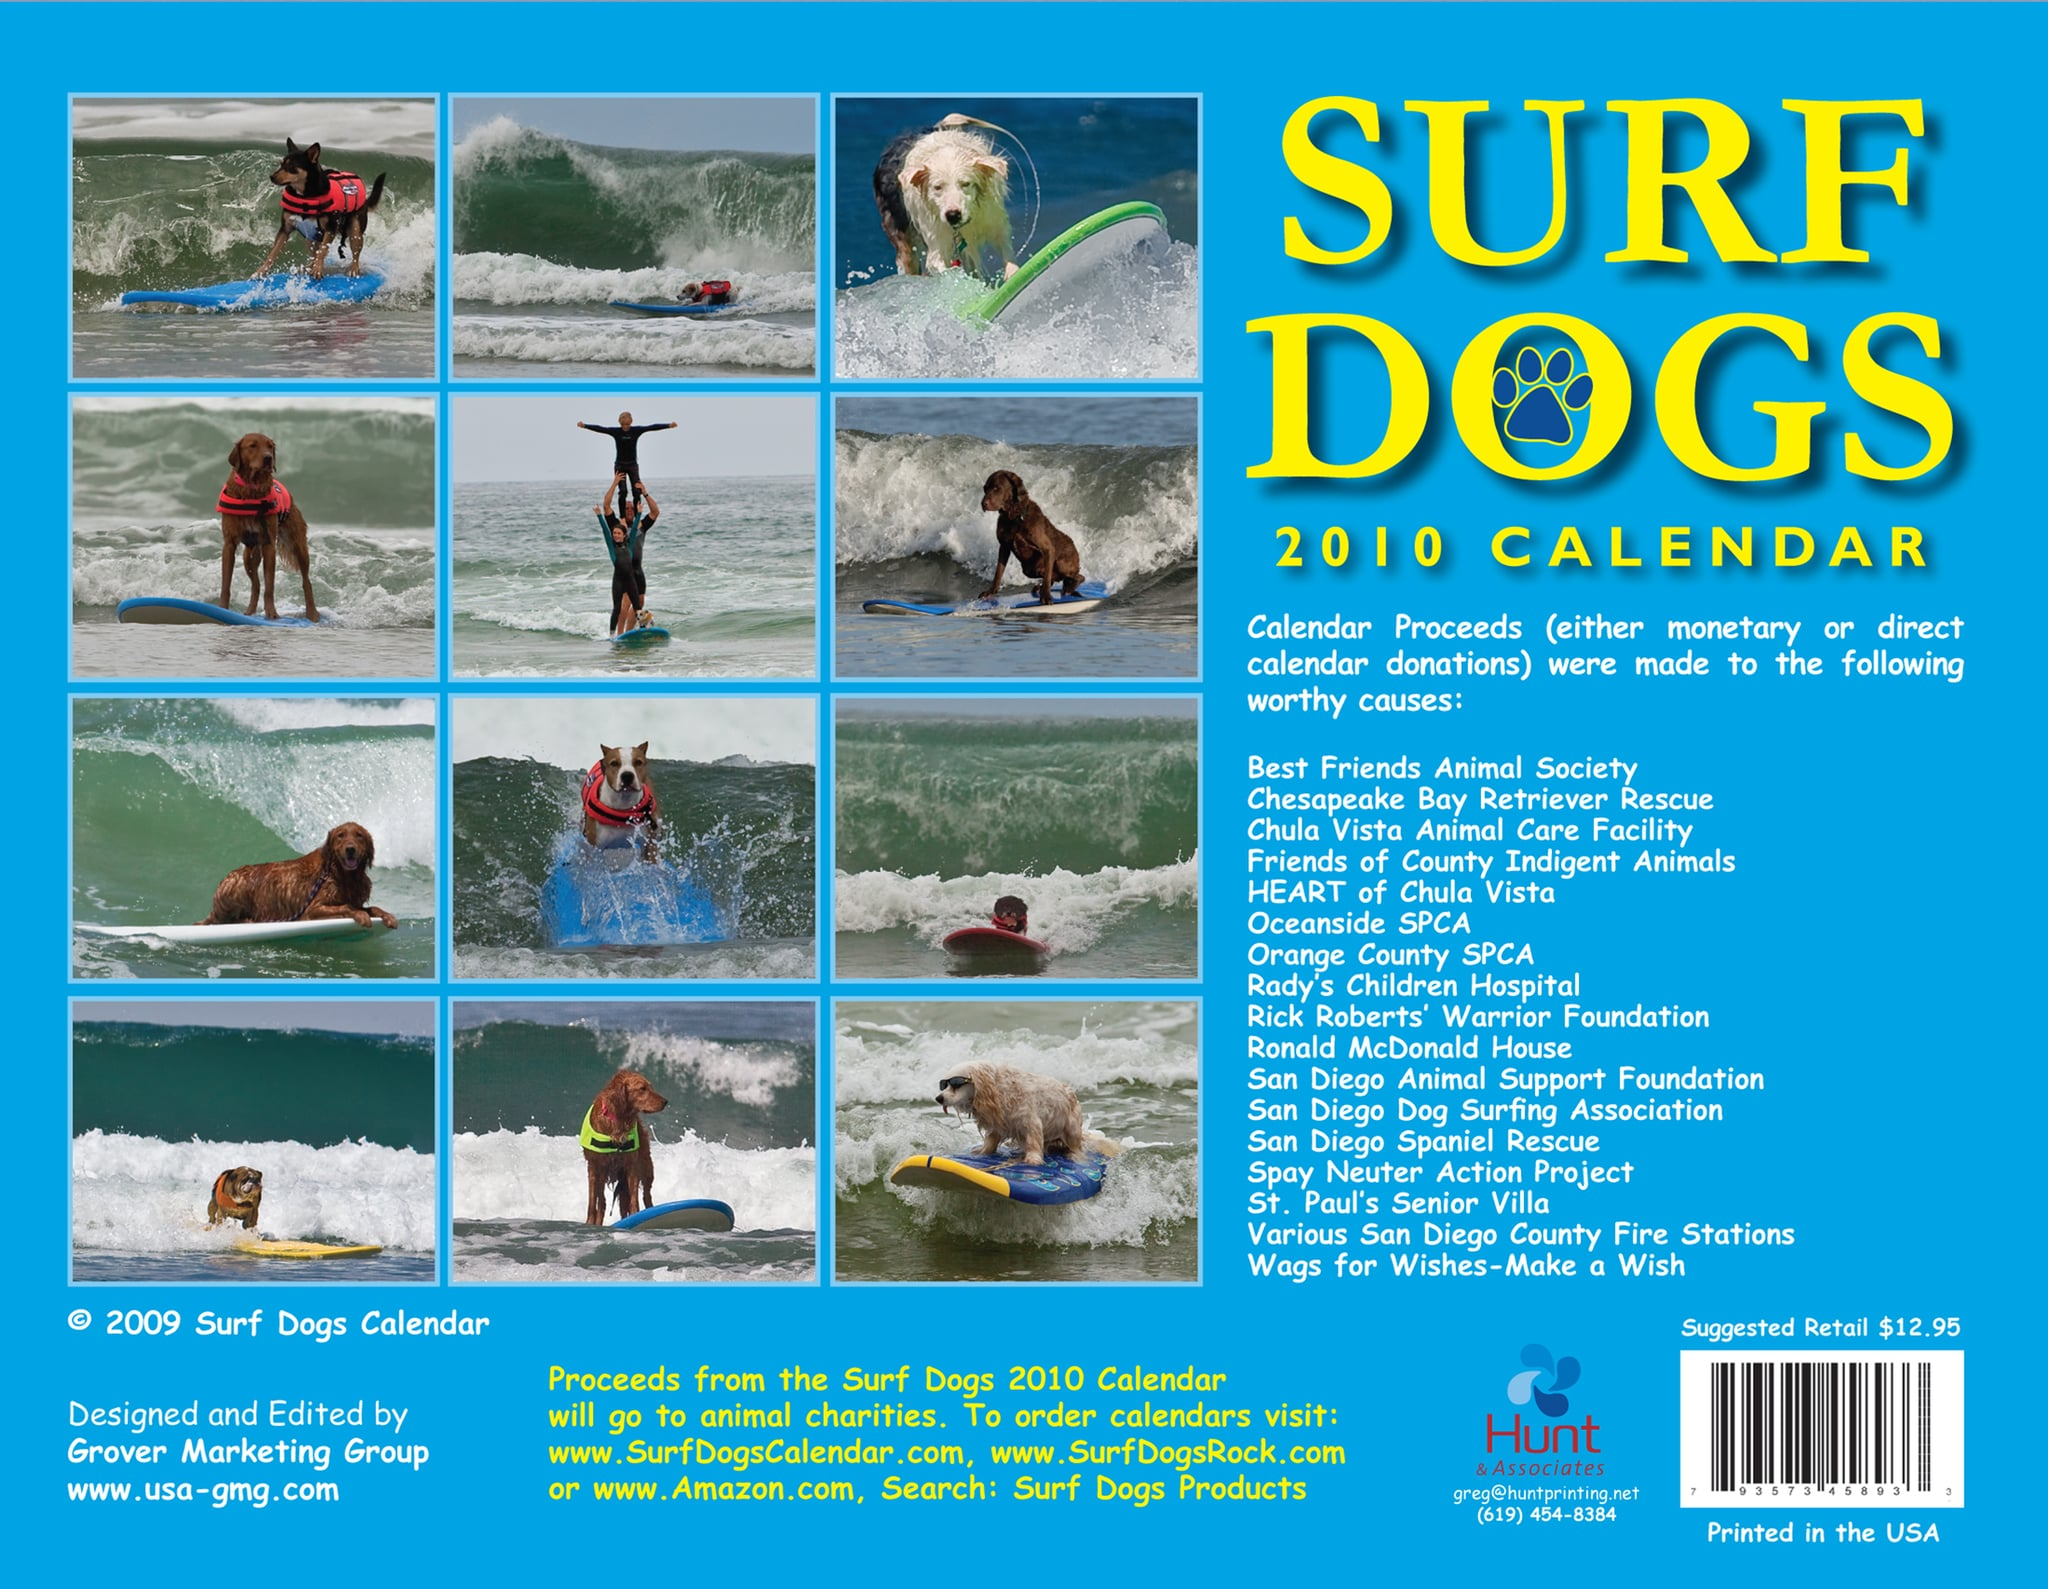 Have You Ever Seen a Surfing Dog?